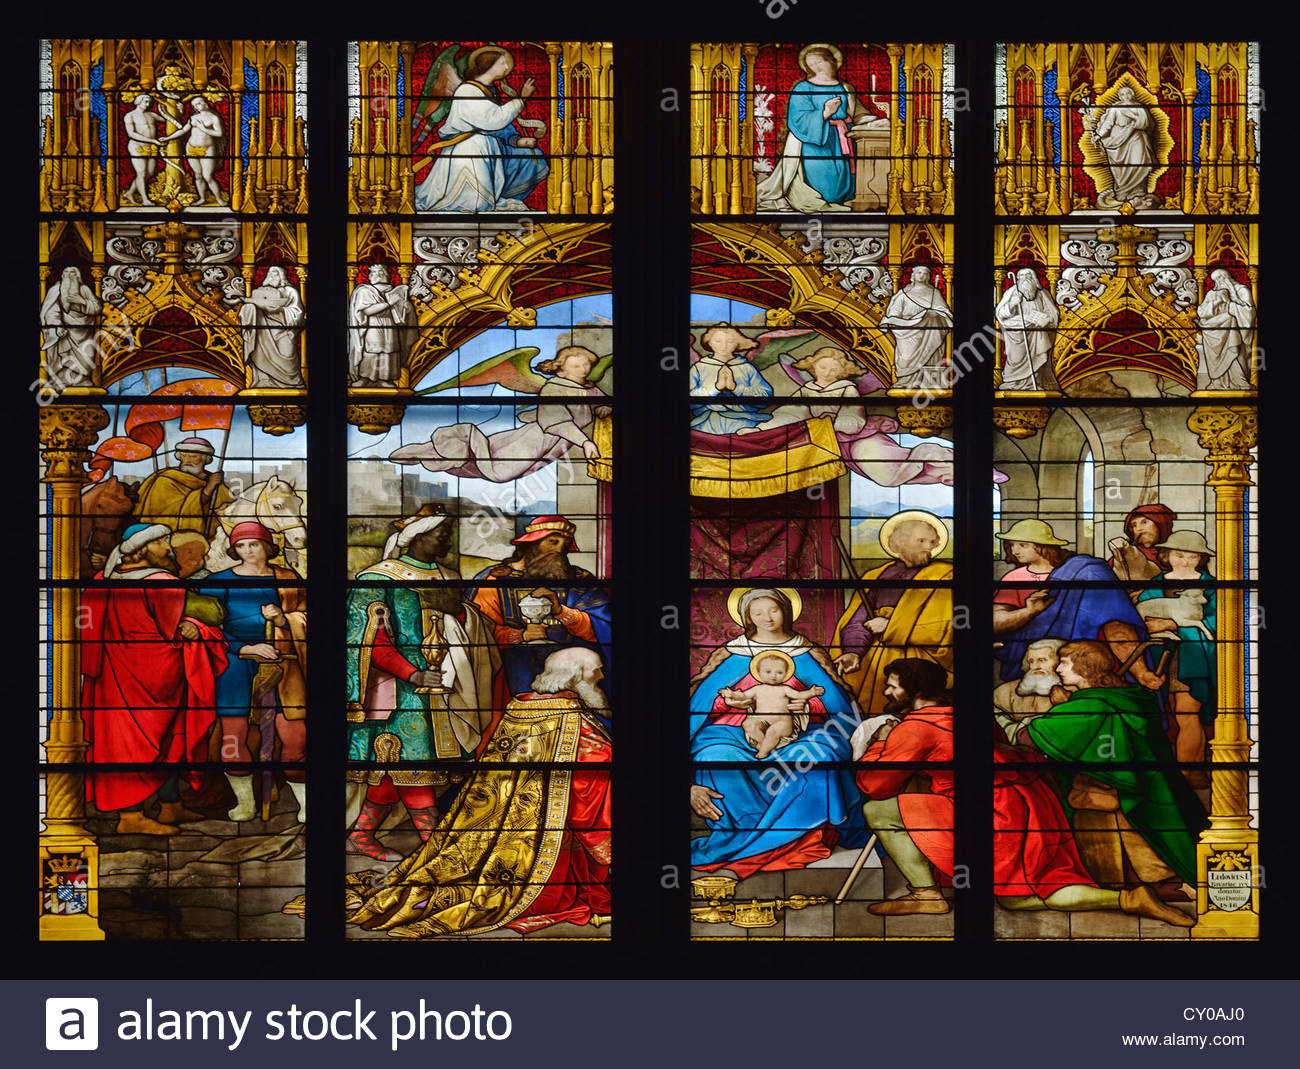 Detail, Bavarian Window, the Adoration of the Magi, the Three Kings visiting the baby Jesus, Cologne Cathedral - Stock Image